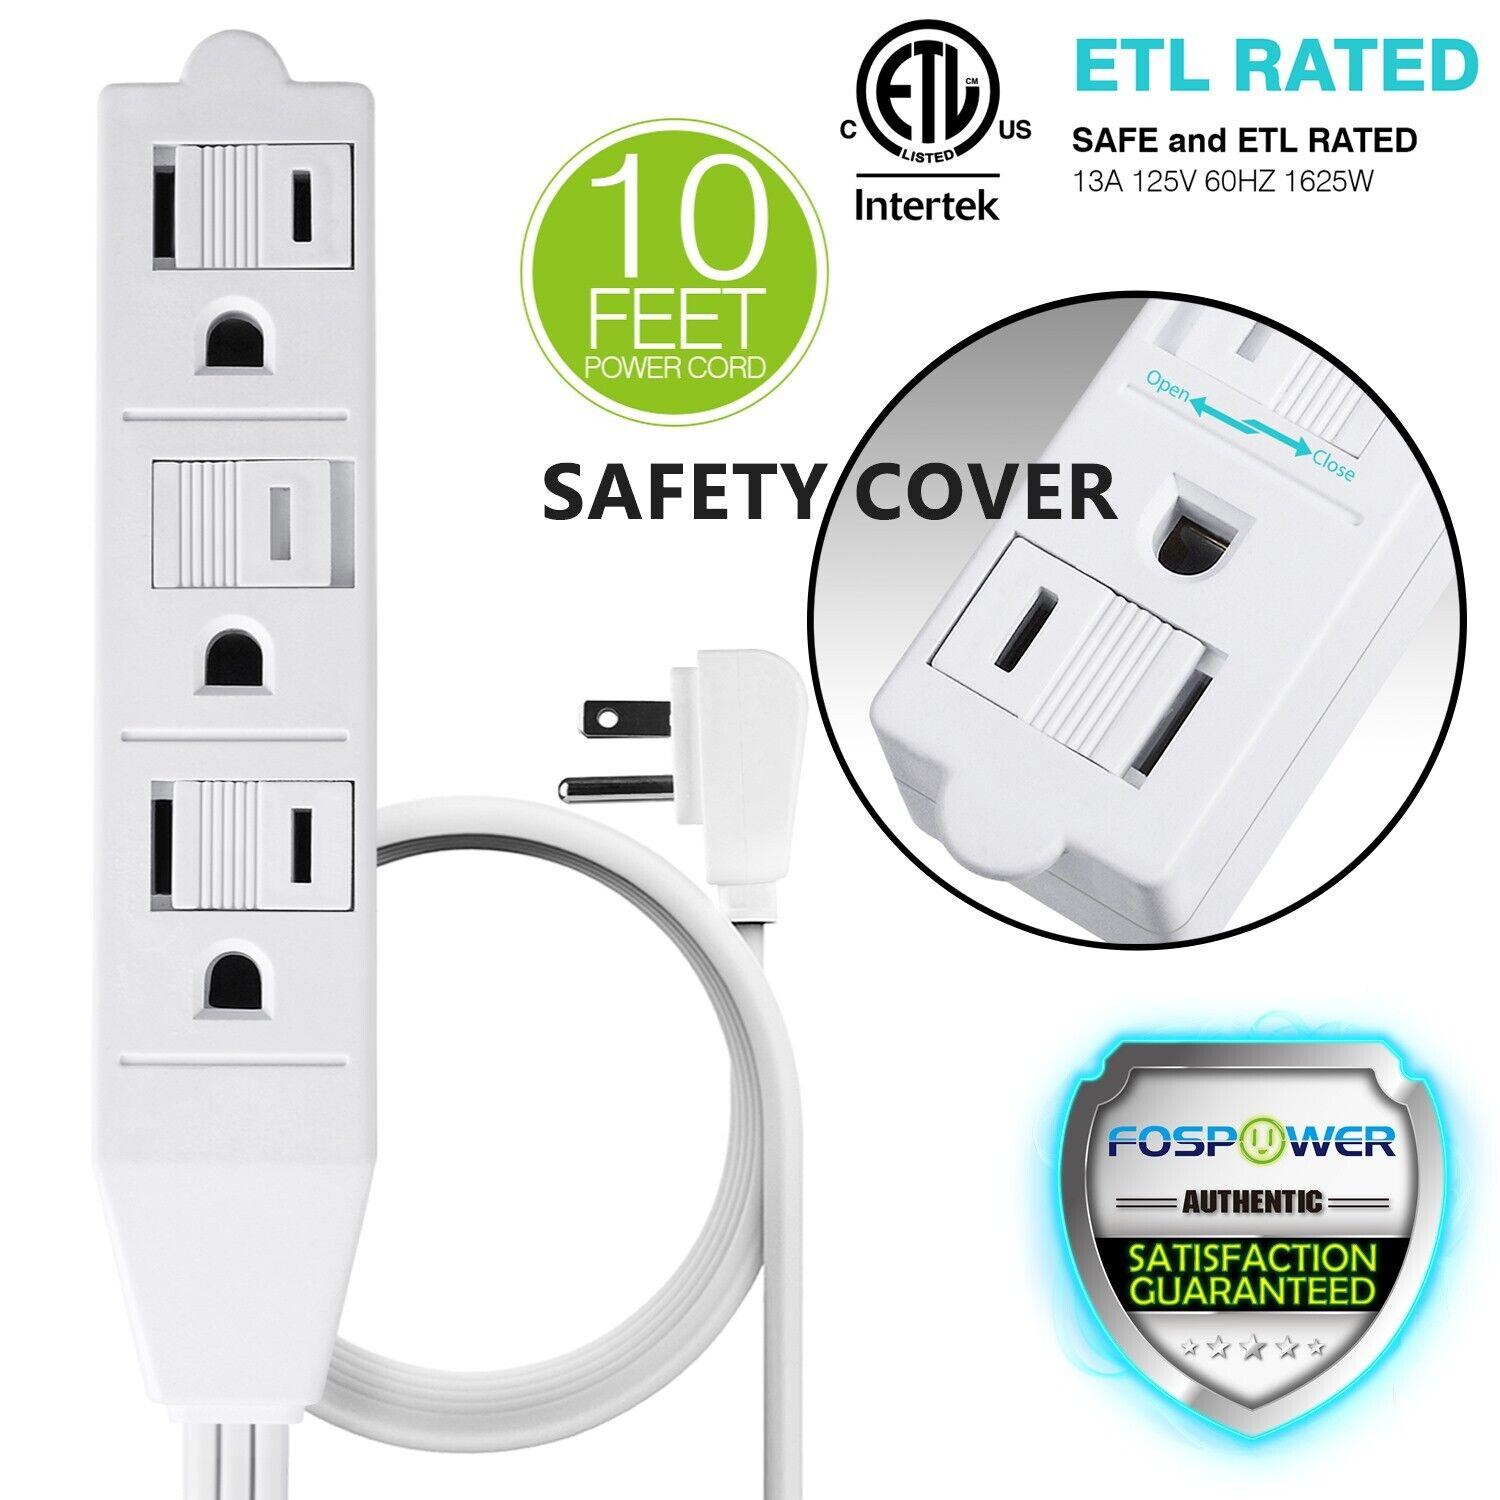 3 Outlet Wall Tap Power Strip Adapter Flat Plug Safety Cover